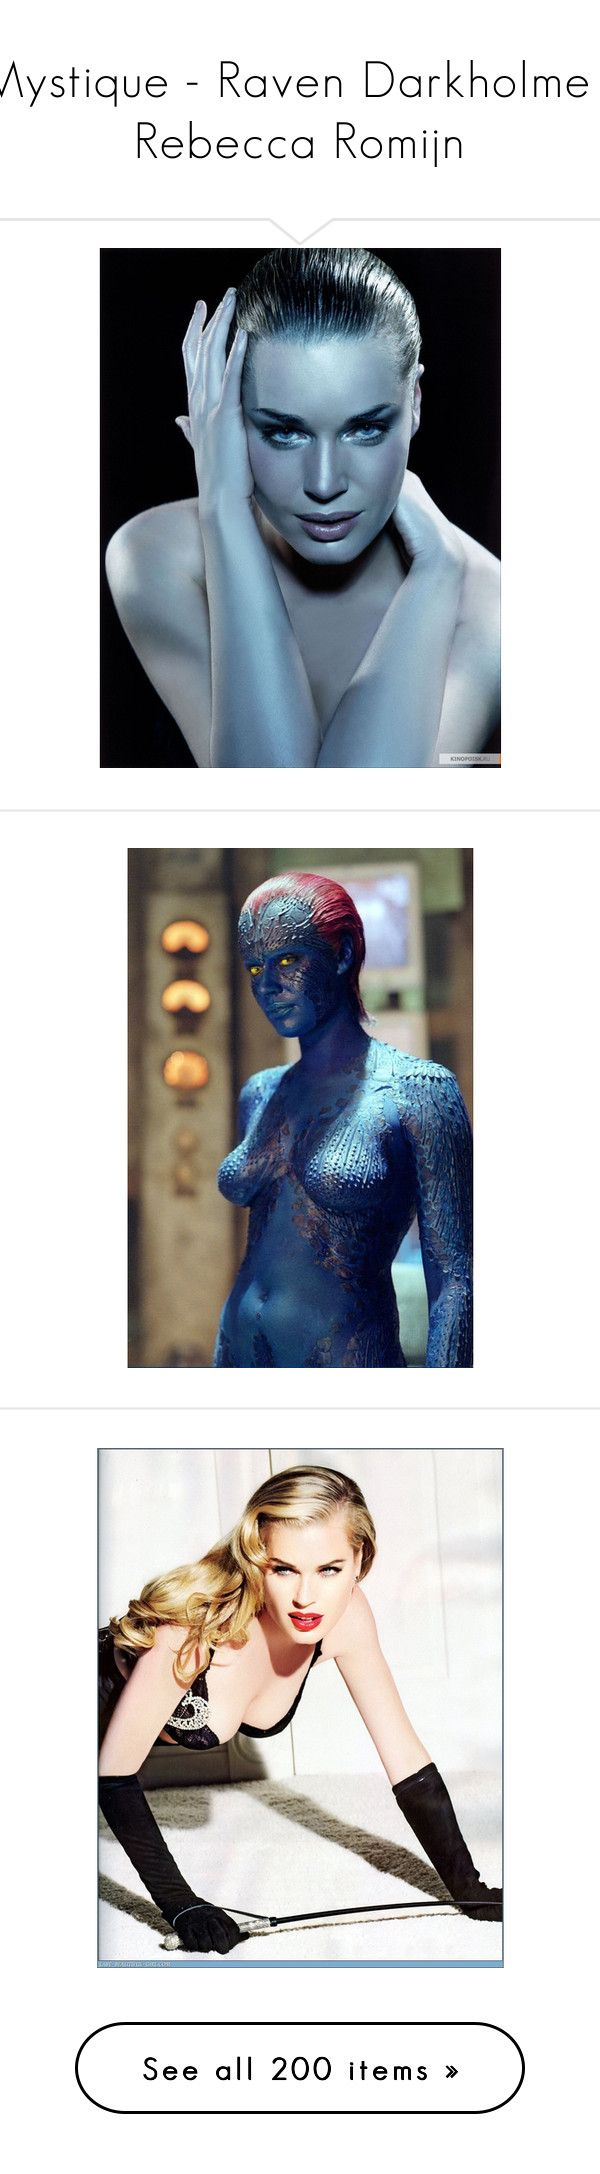 """Mystique - Raven Darkholme - Rebecca Romijn"" by carla-turner-bastet ❤ liked on Polyvore featuring rebecca romijn, marvel, men's fashion, men's accessories, x-men, pictures, ad campaign tear sheet, michelle mason, tops and blouses"